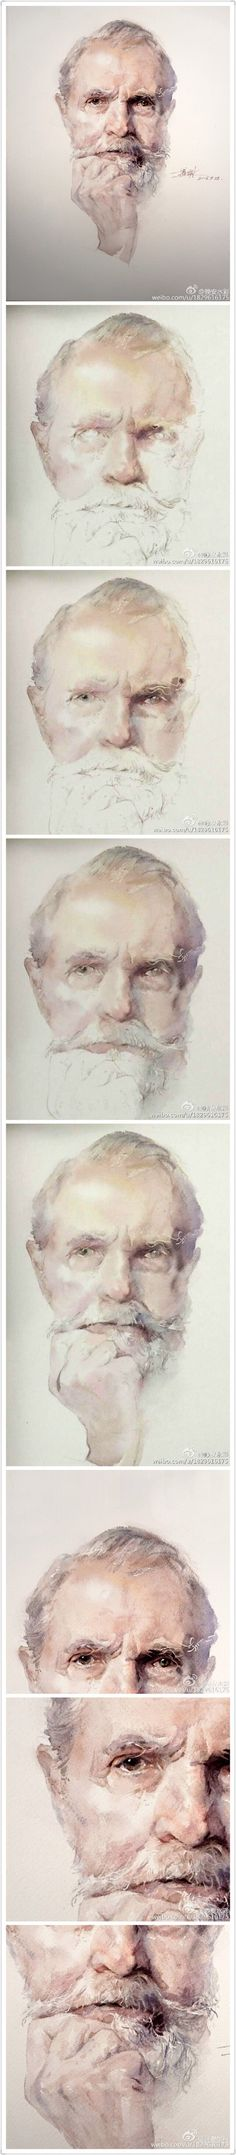 Pencil Portrait Mastery - 微博晚安水彩 水彩教程 - Discover The Secrets Of Drawing Realistic Pencil Portraits